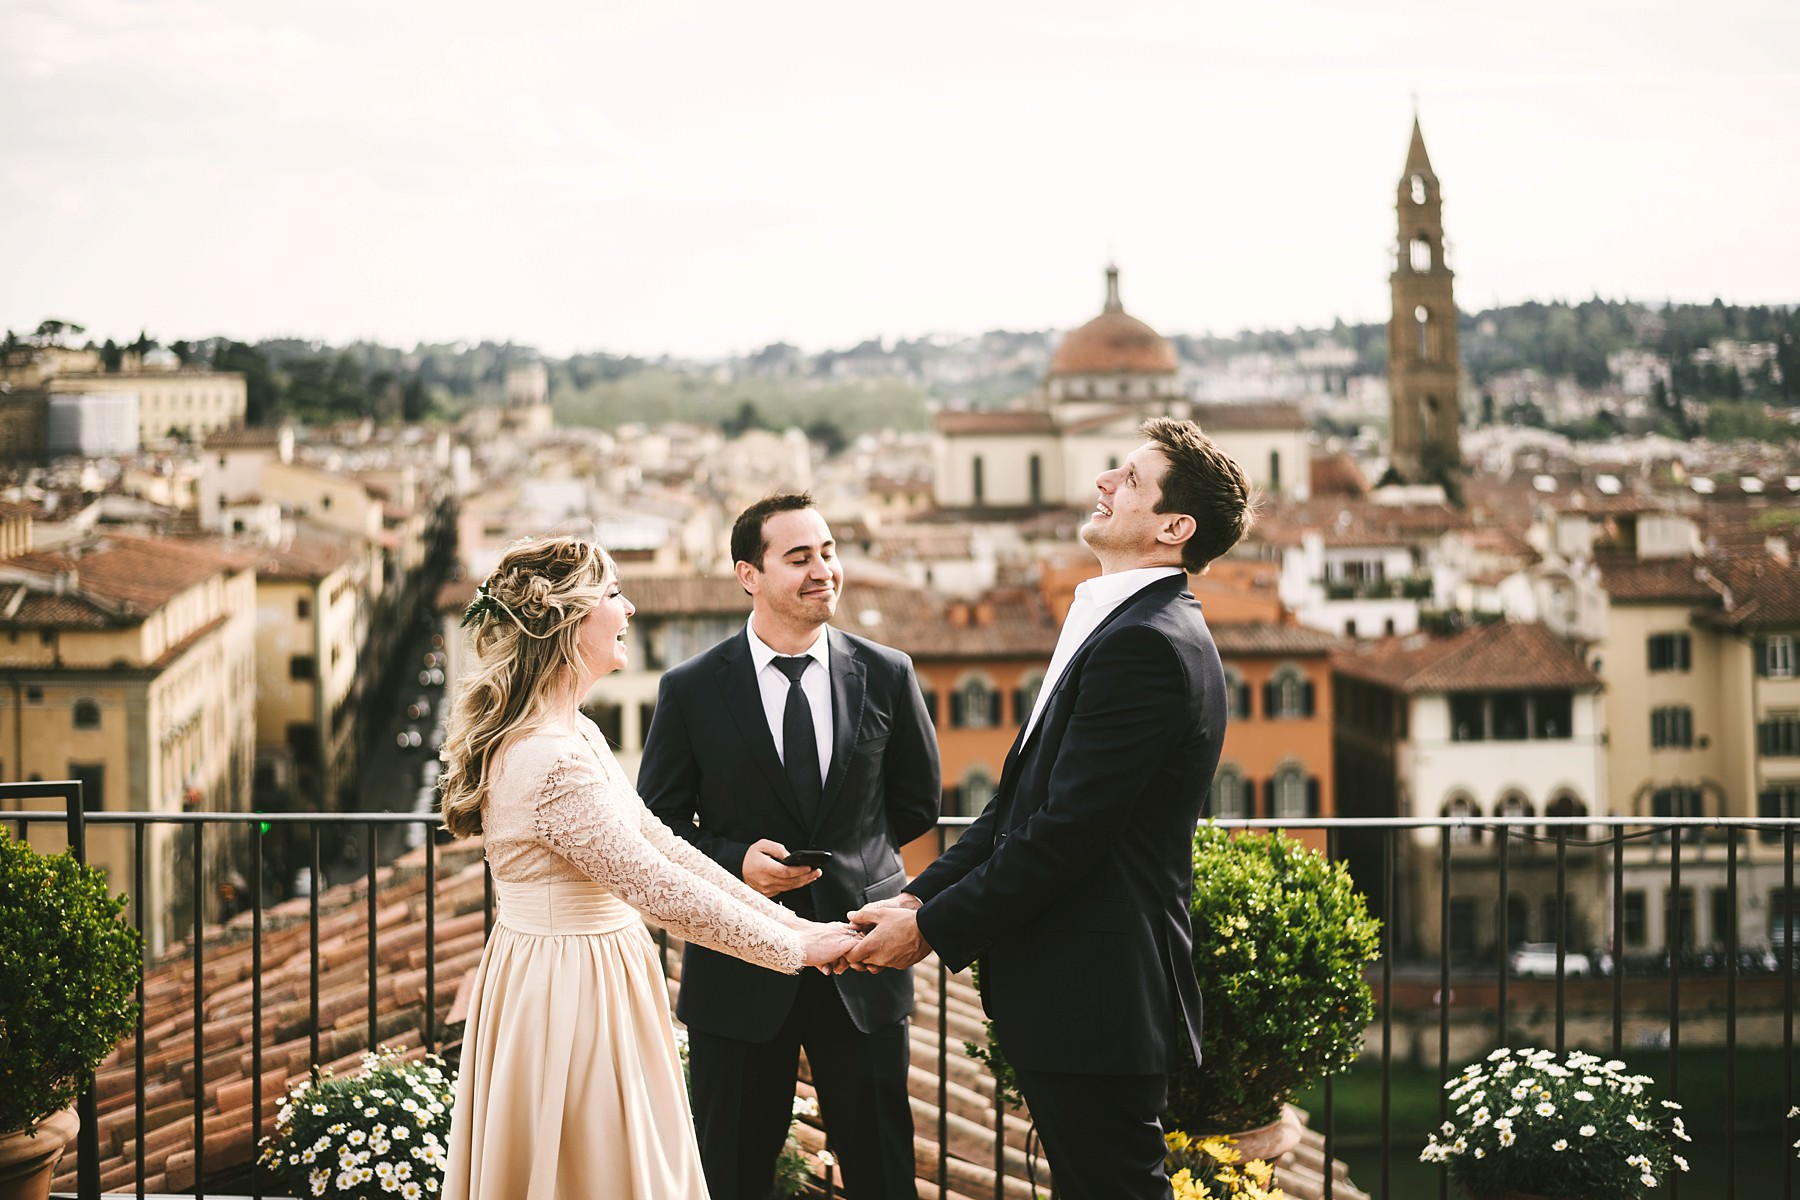 Lovely intimate vows renewal photo shoot in Florence at Antica Torre Tornabuoni a perfect location for intimate events with a breathtaking view of the city